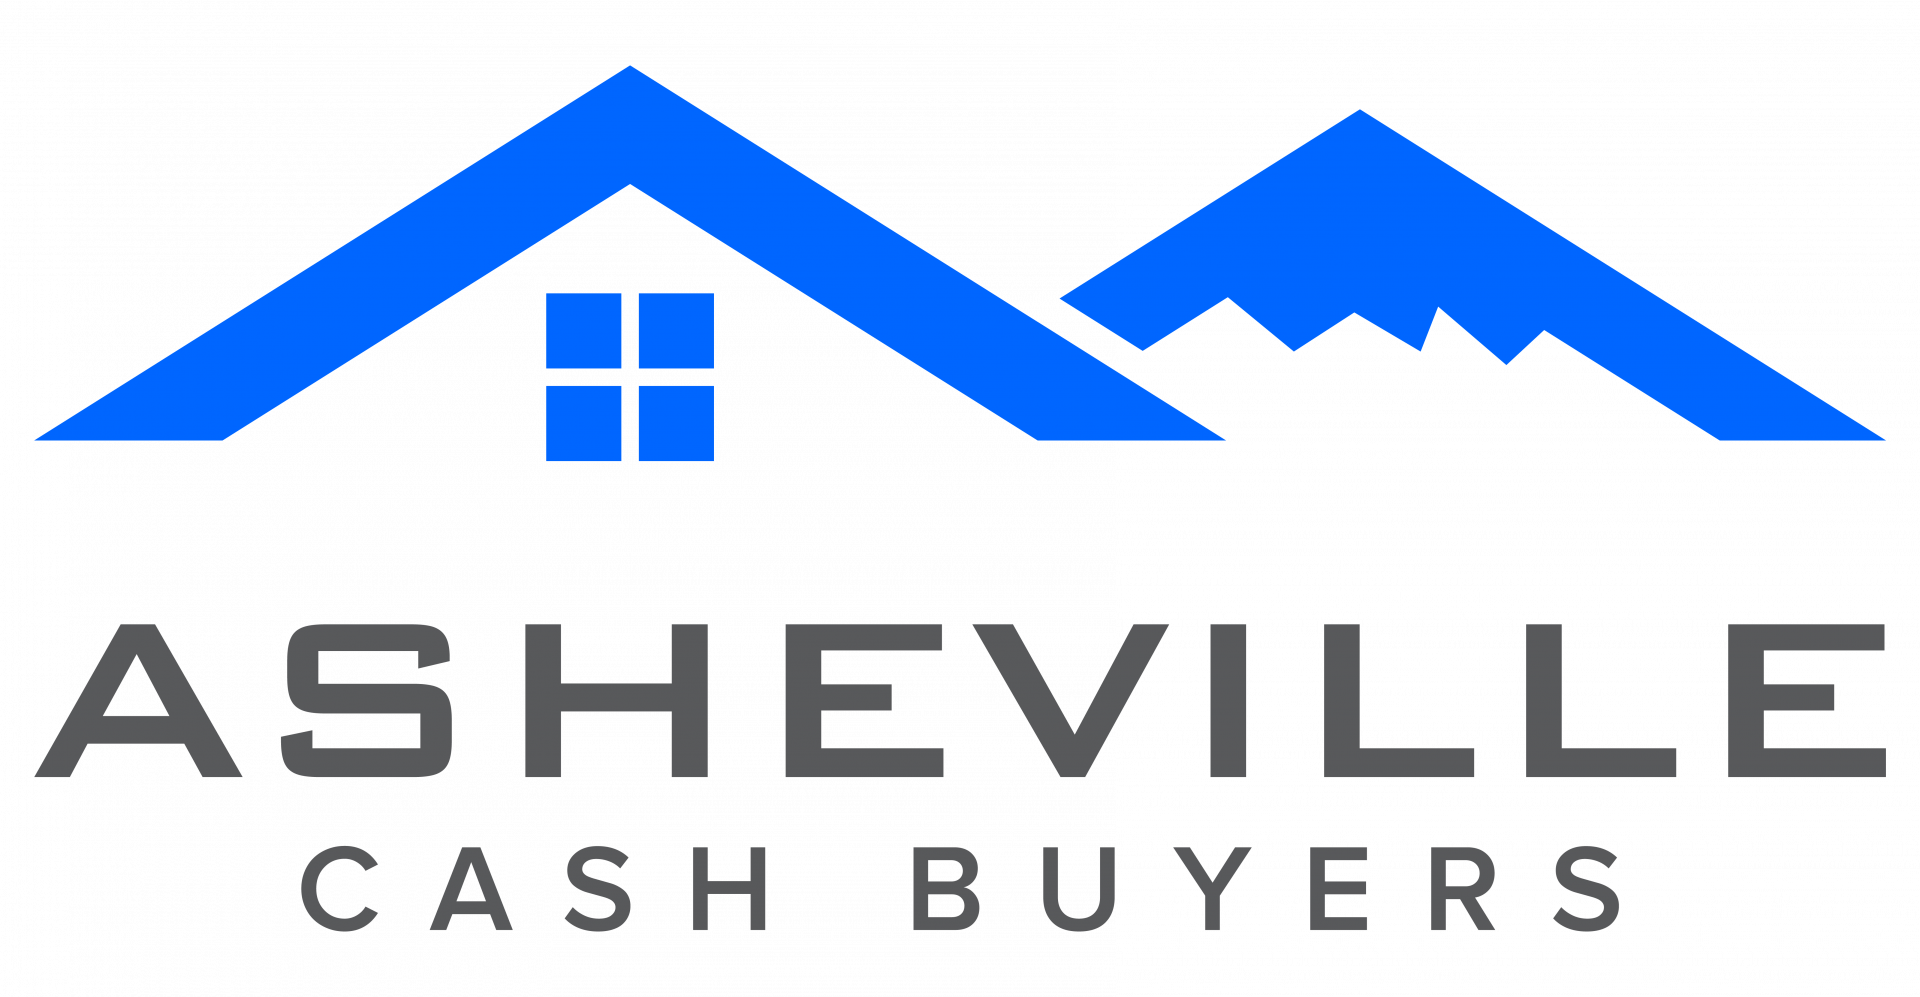 Asheville Cash Buyers logo